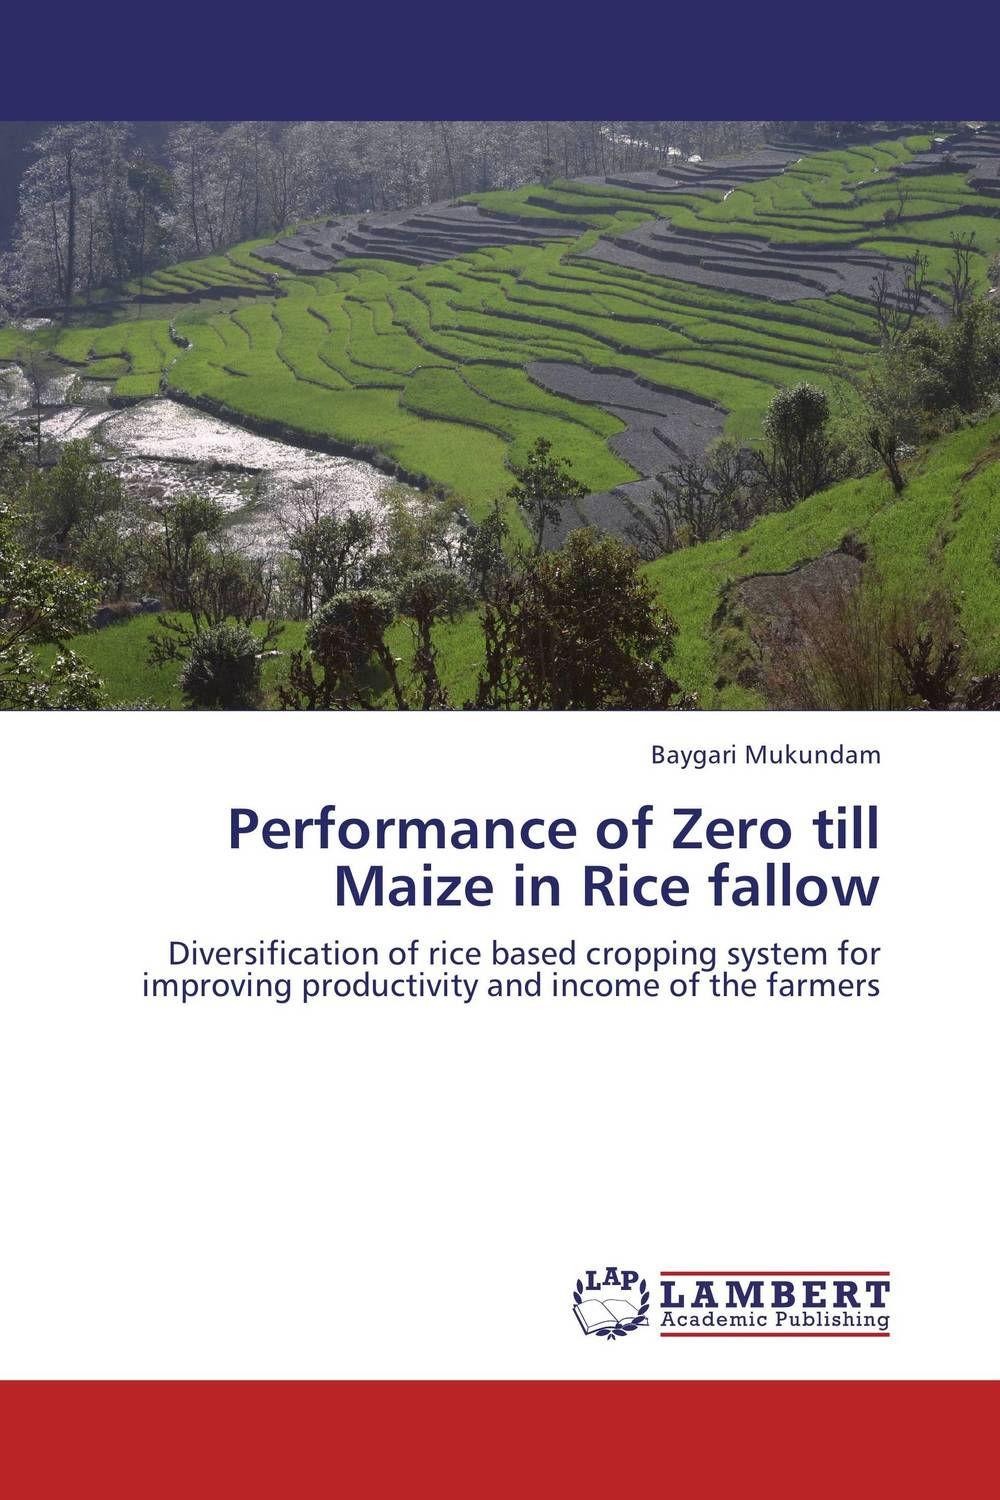 Performance of Zero till Maize in Rice fallow fitzgerald f the great gatsby stage 5 сd